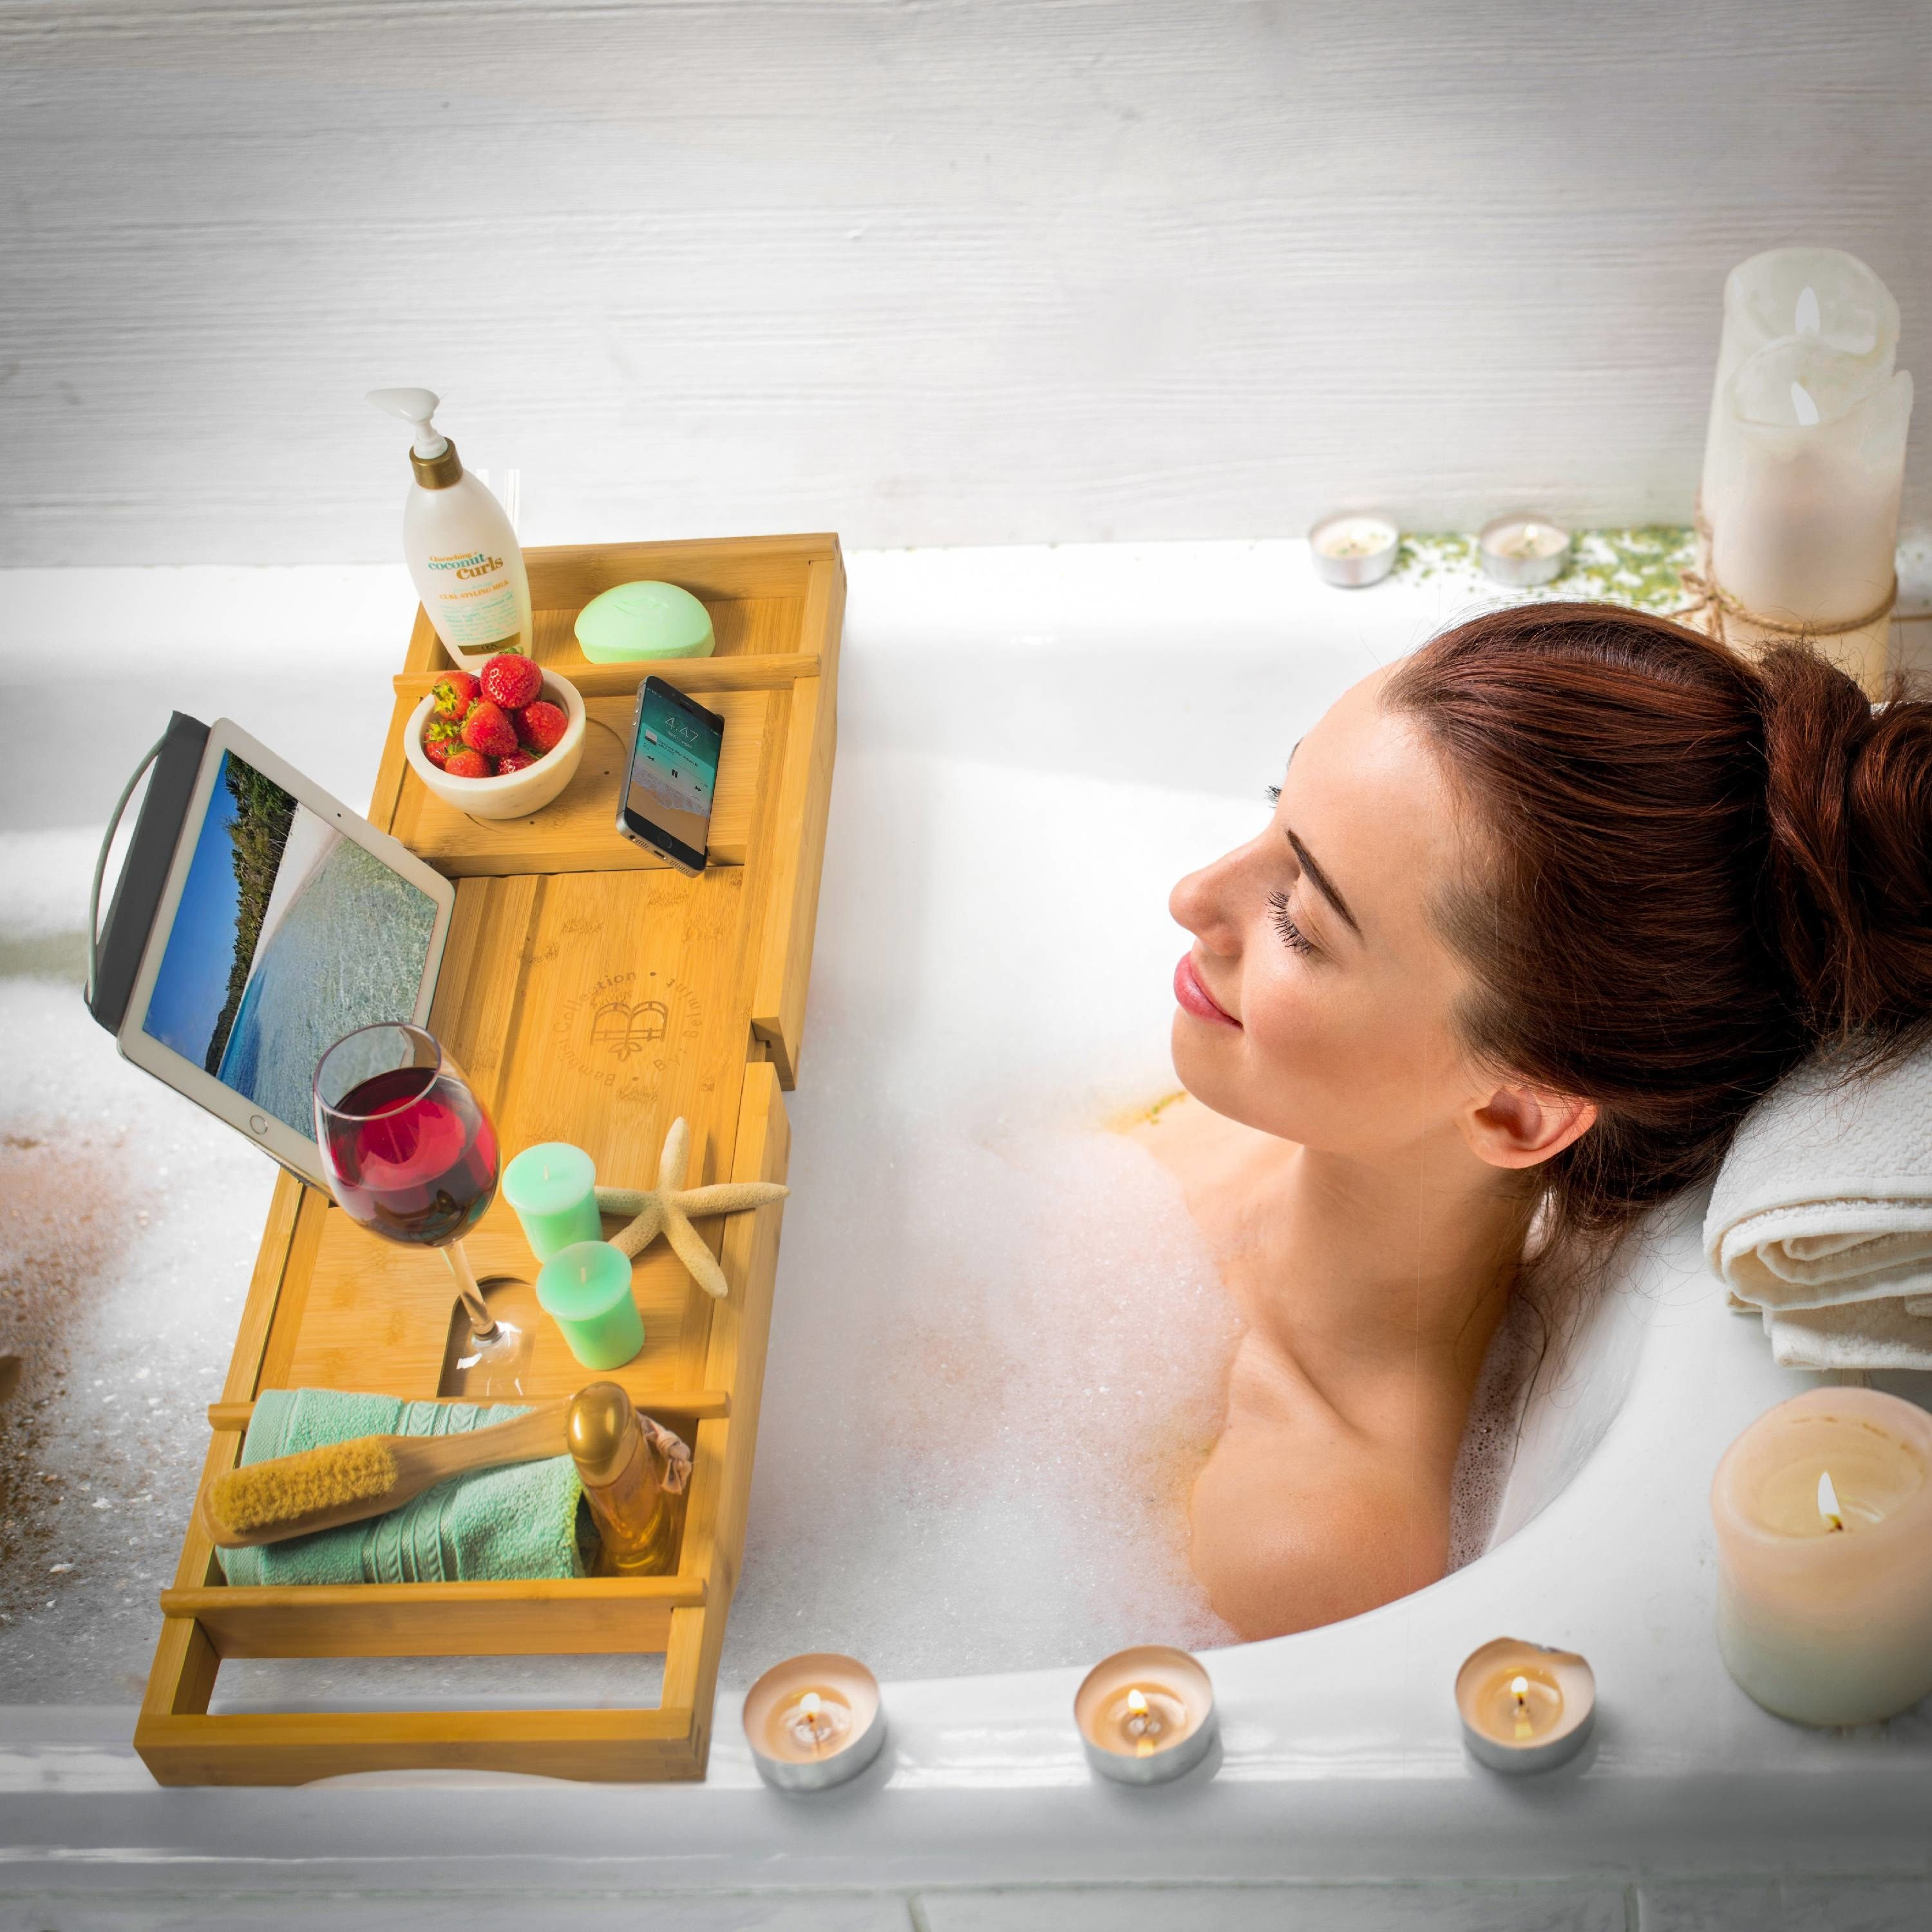 a model relaxing in the bath and using the bath tray